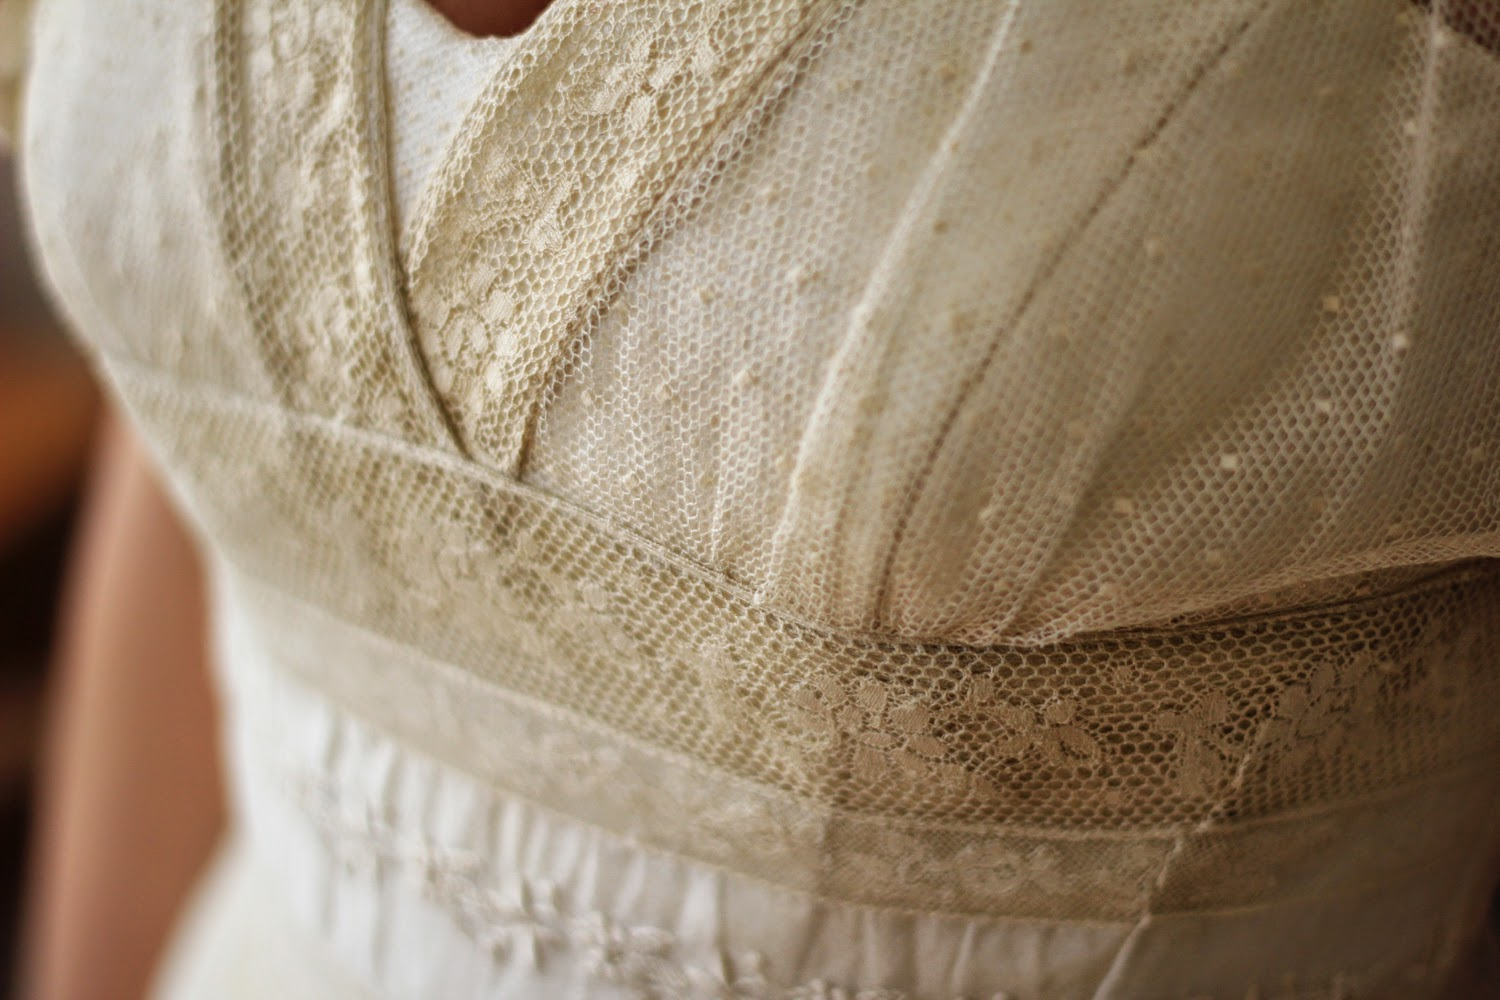 My antique lace wedding dress - made from Normandy lace bedspread